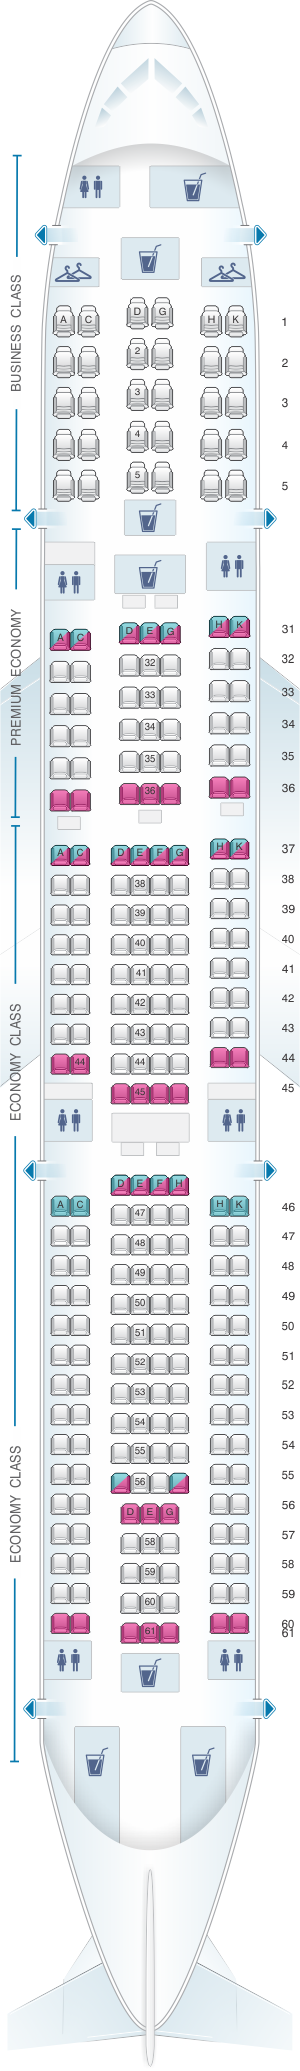 Seat map for China Southern Airlines Airbus A33B